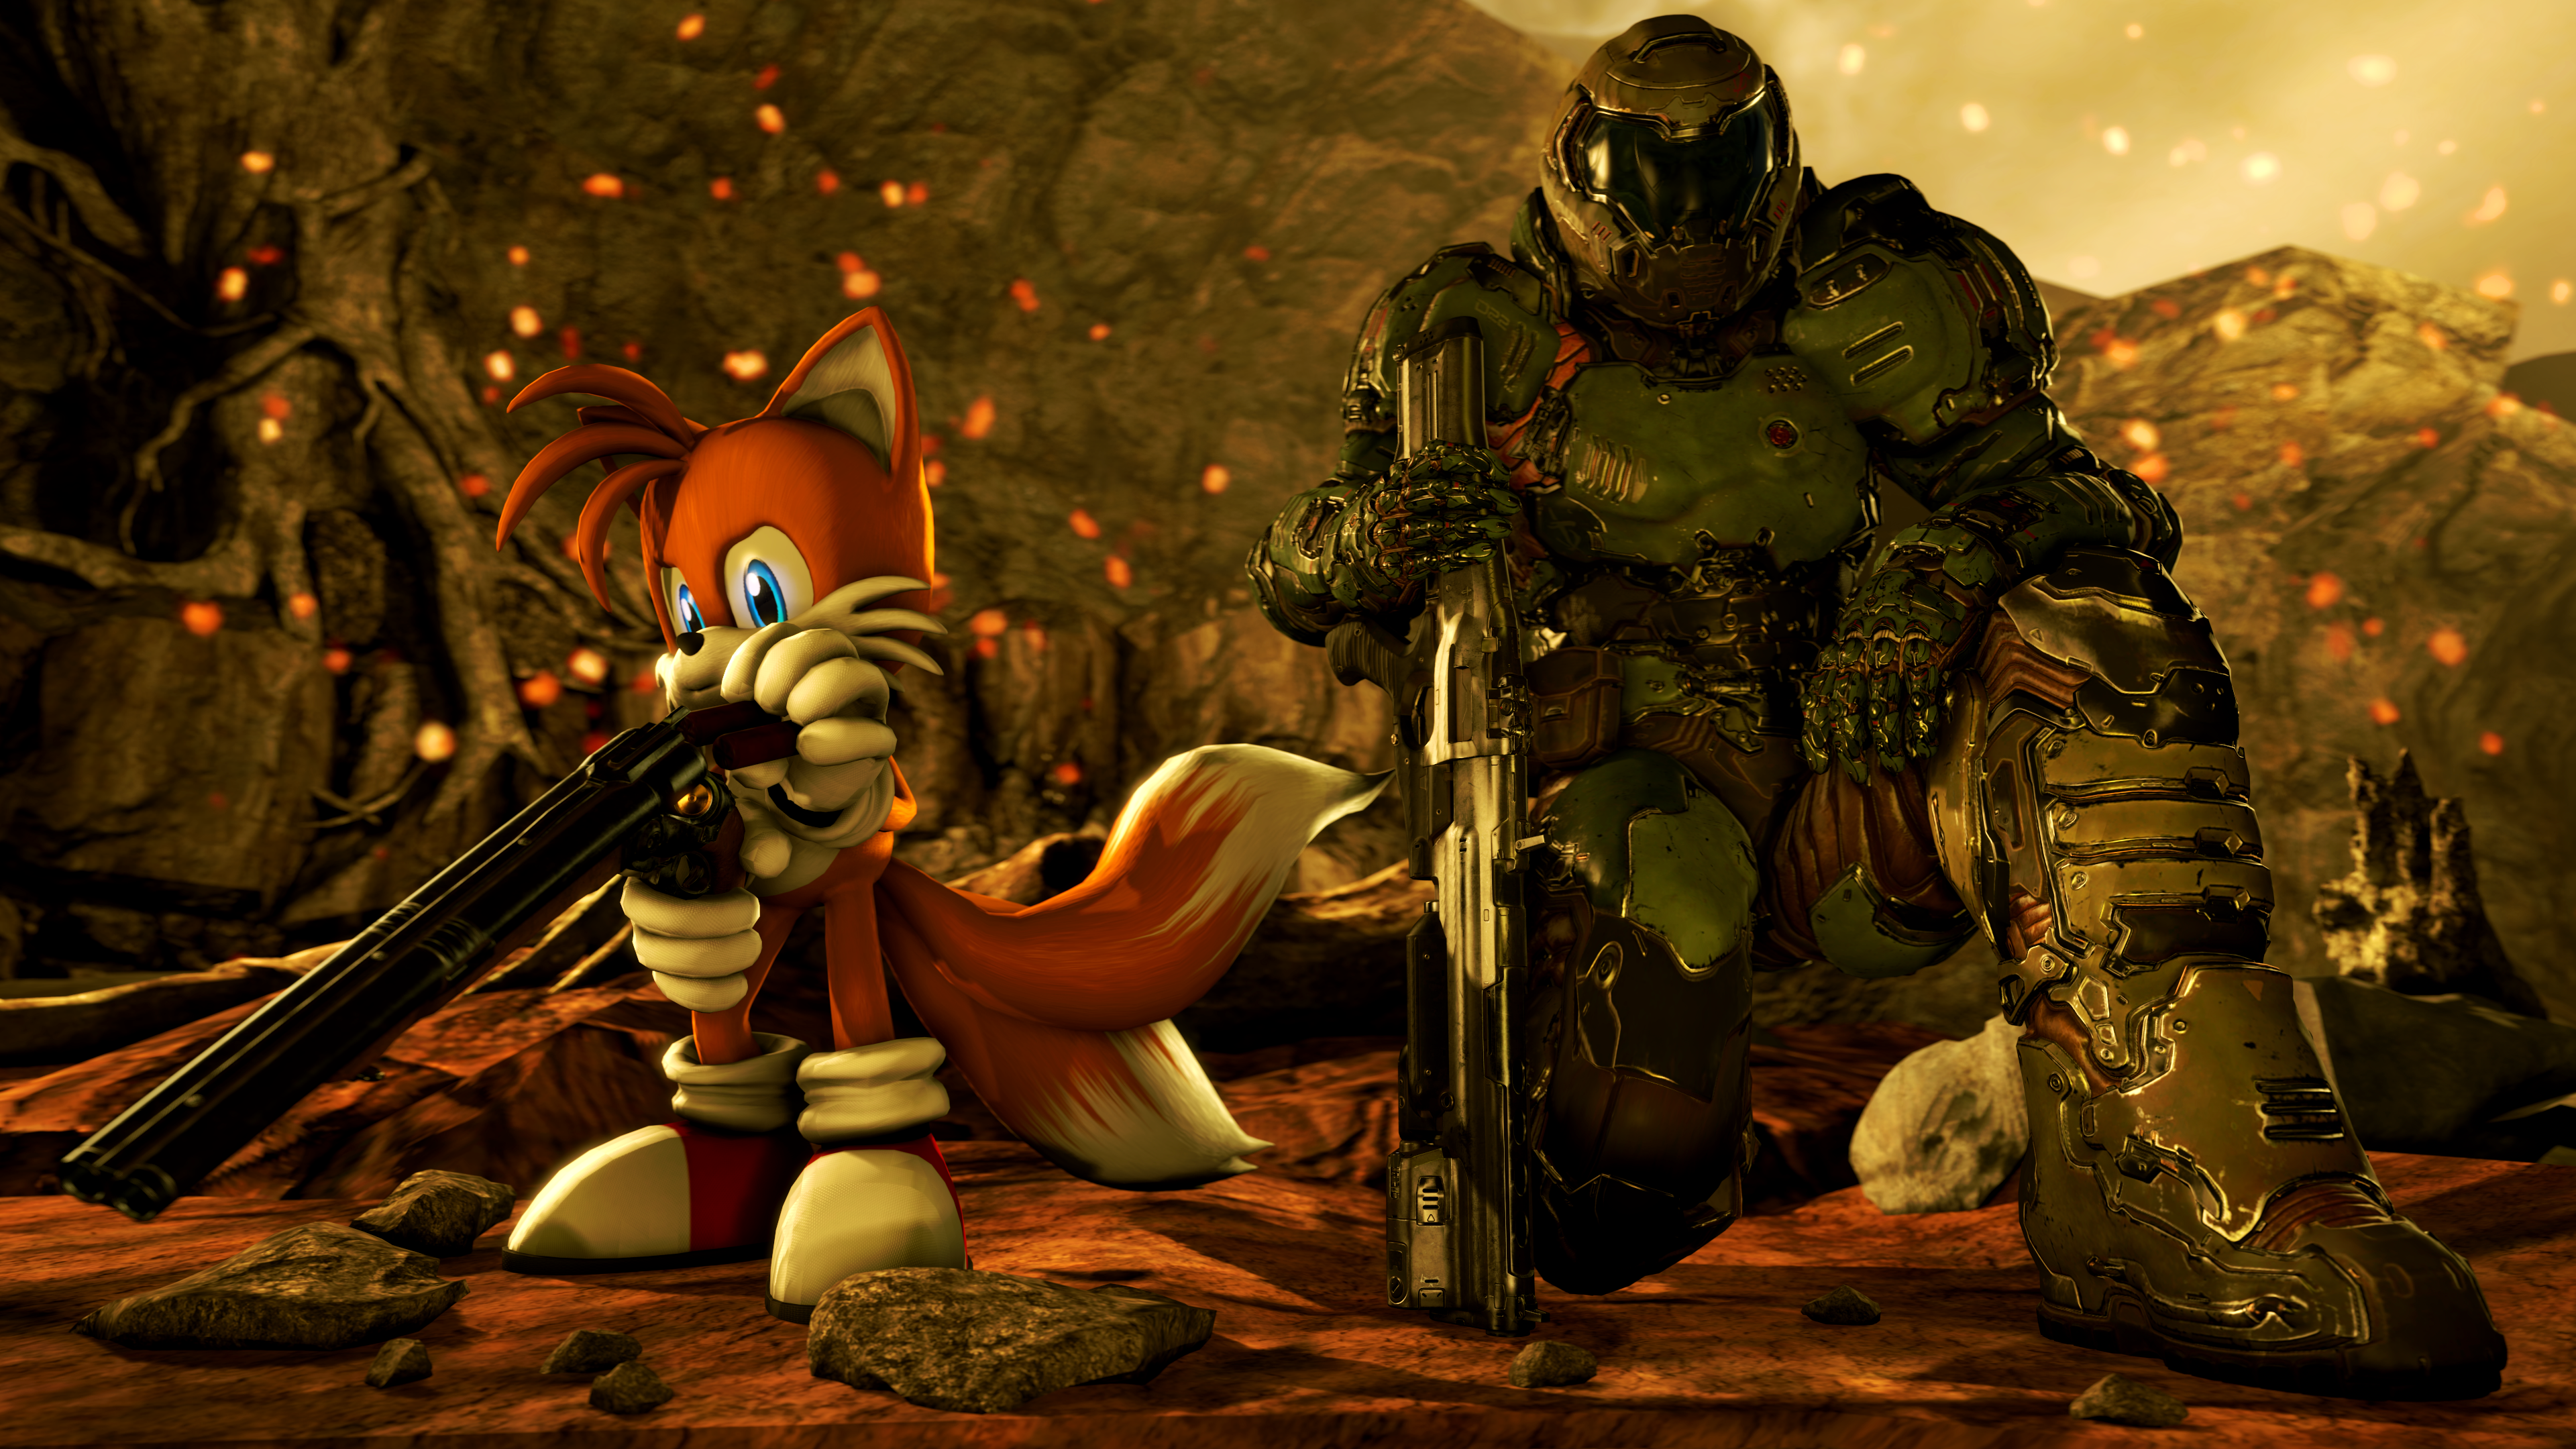 Doom Slayer And Tails Sfm By Hansgrosse1 On Deviantart